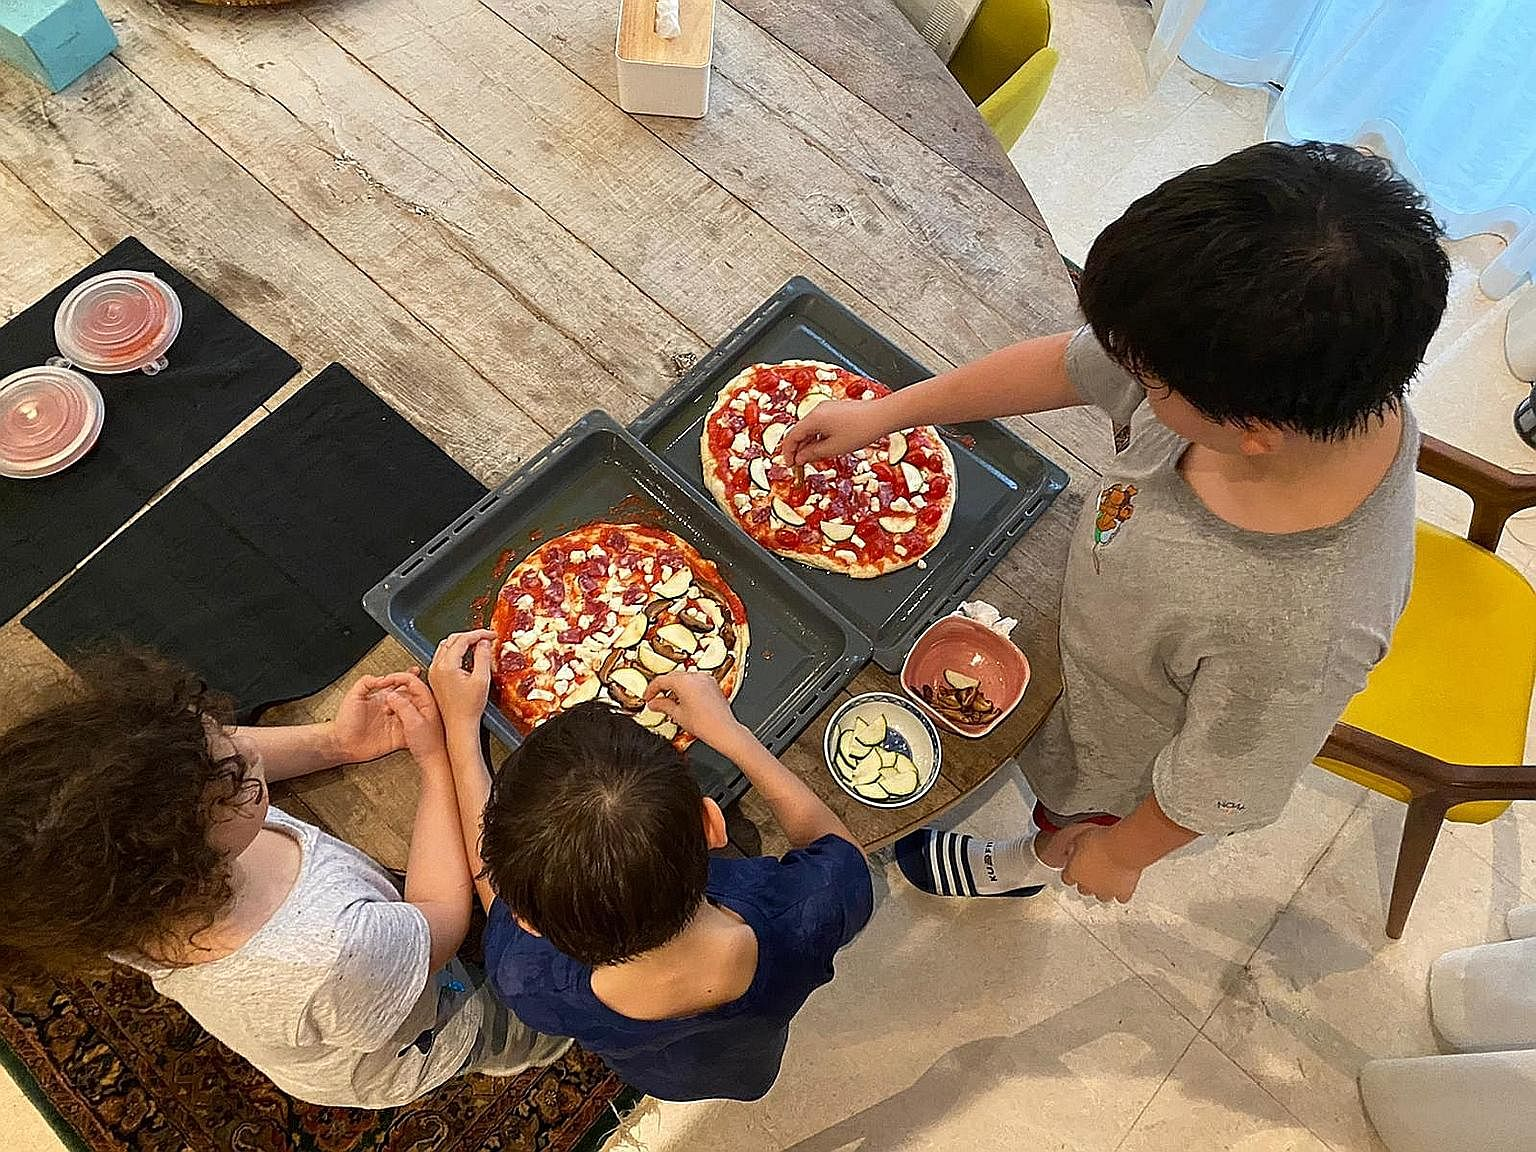 If you have children at home, they will love shaping the dough and trying out different toppings.